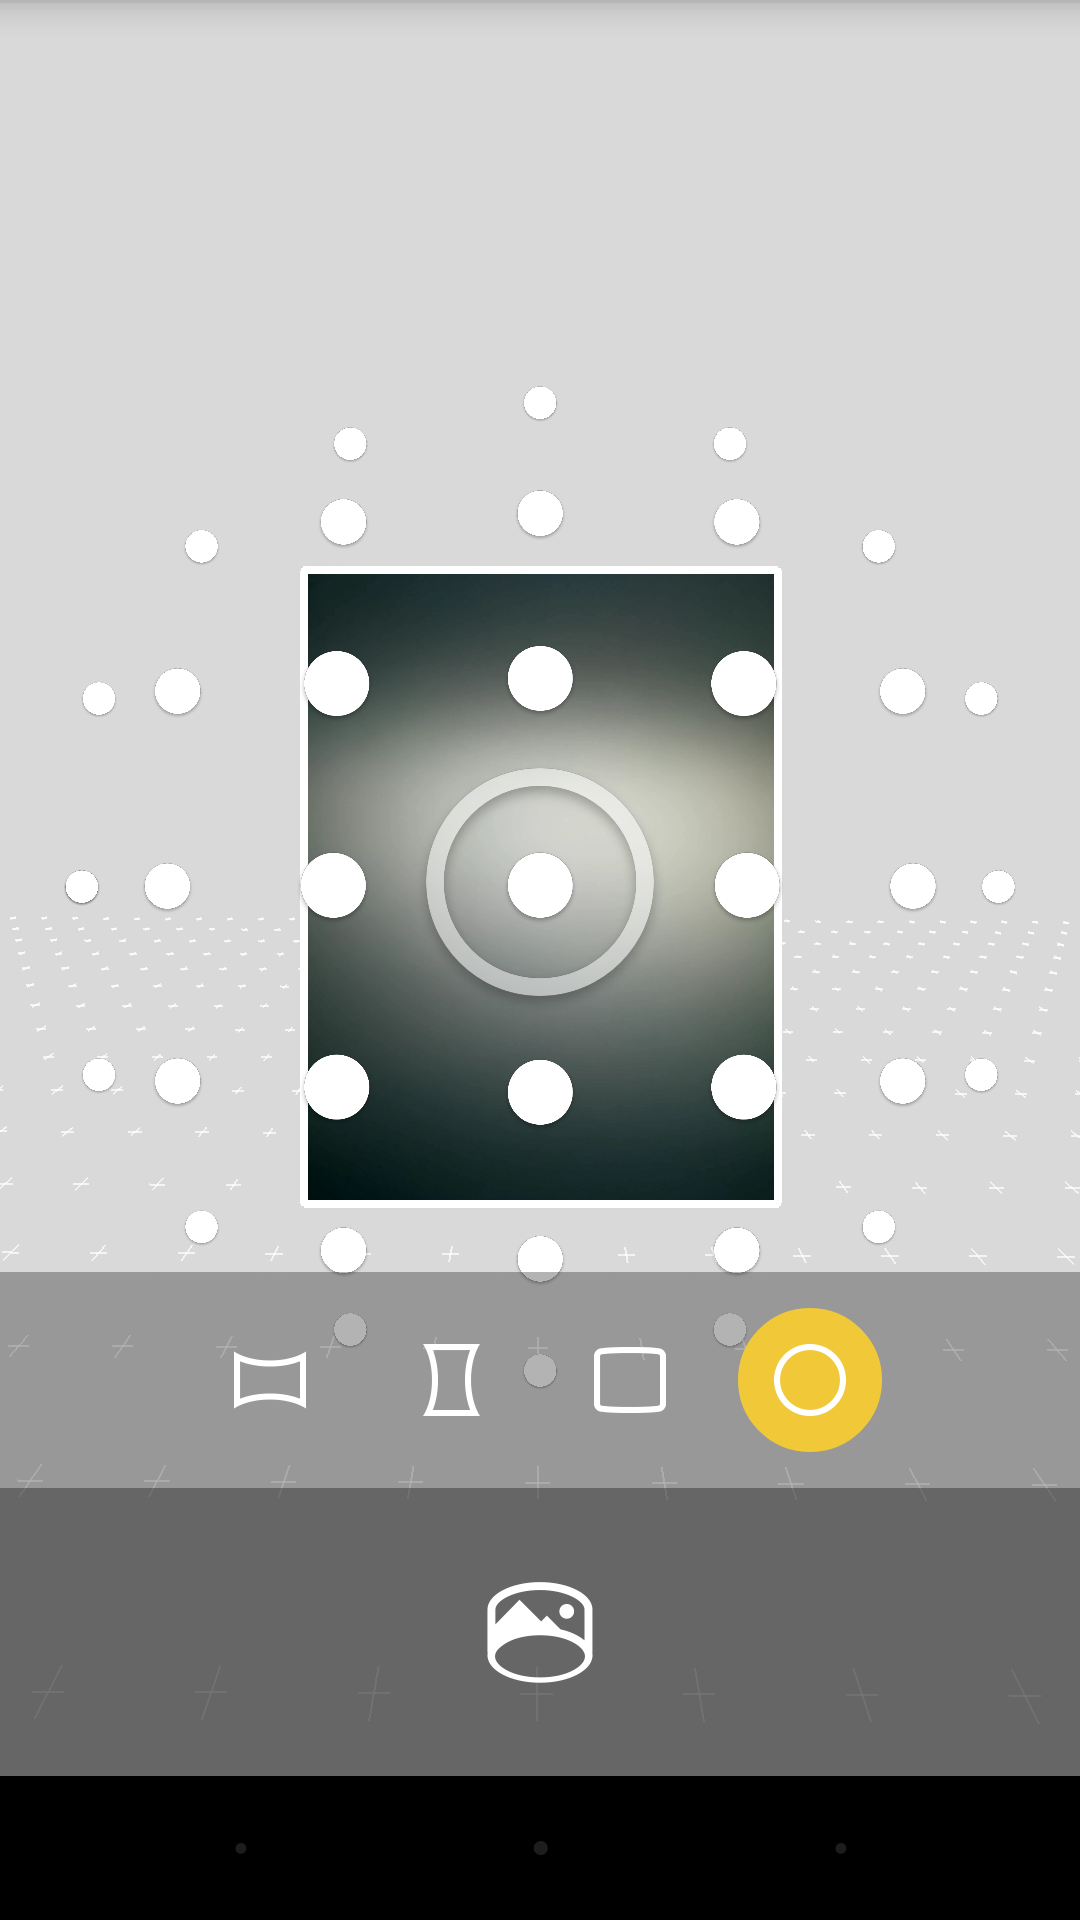 android camera app 2.3 1